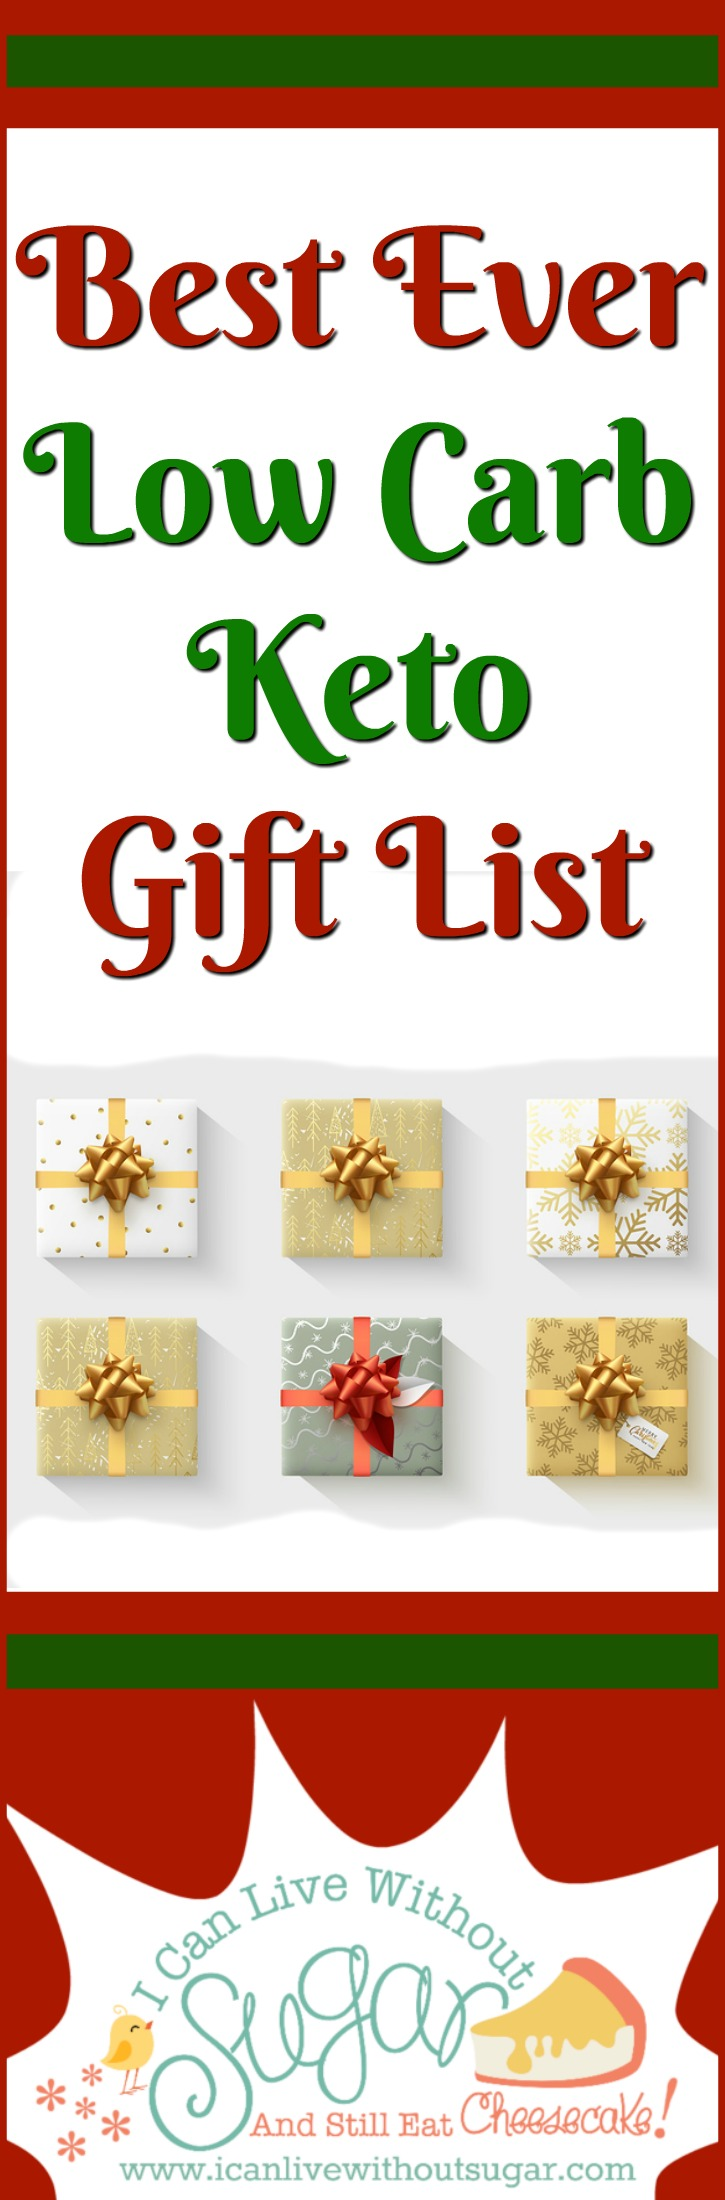 This best ever low carb keto gift list makes it easy to find gifts for people following a low carb keto lifestyle. Spoil yourself and fellow low carbers with a well chosen low carb gift!